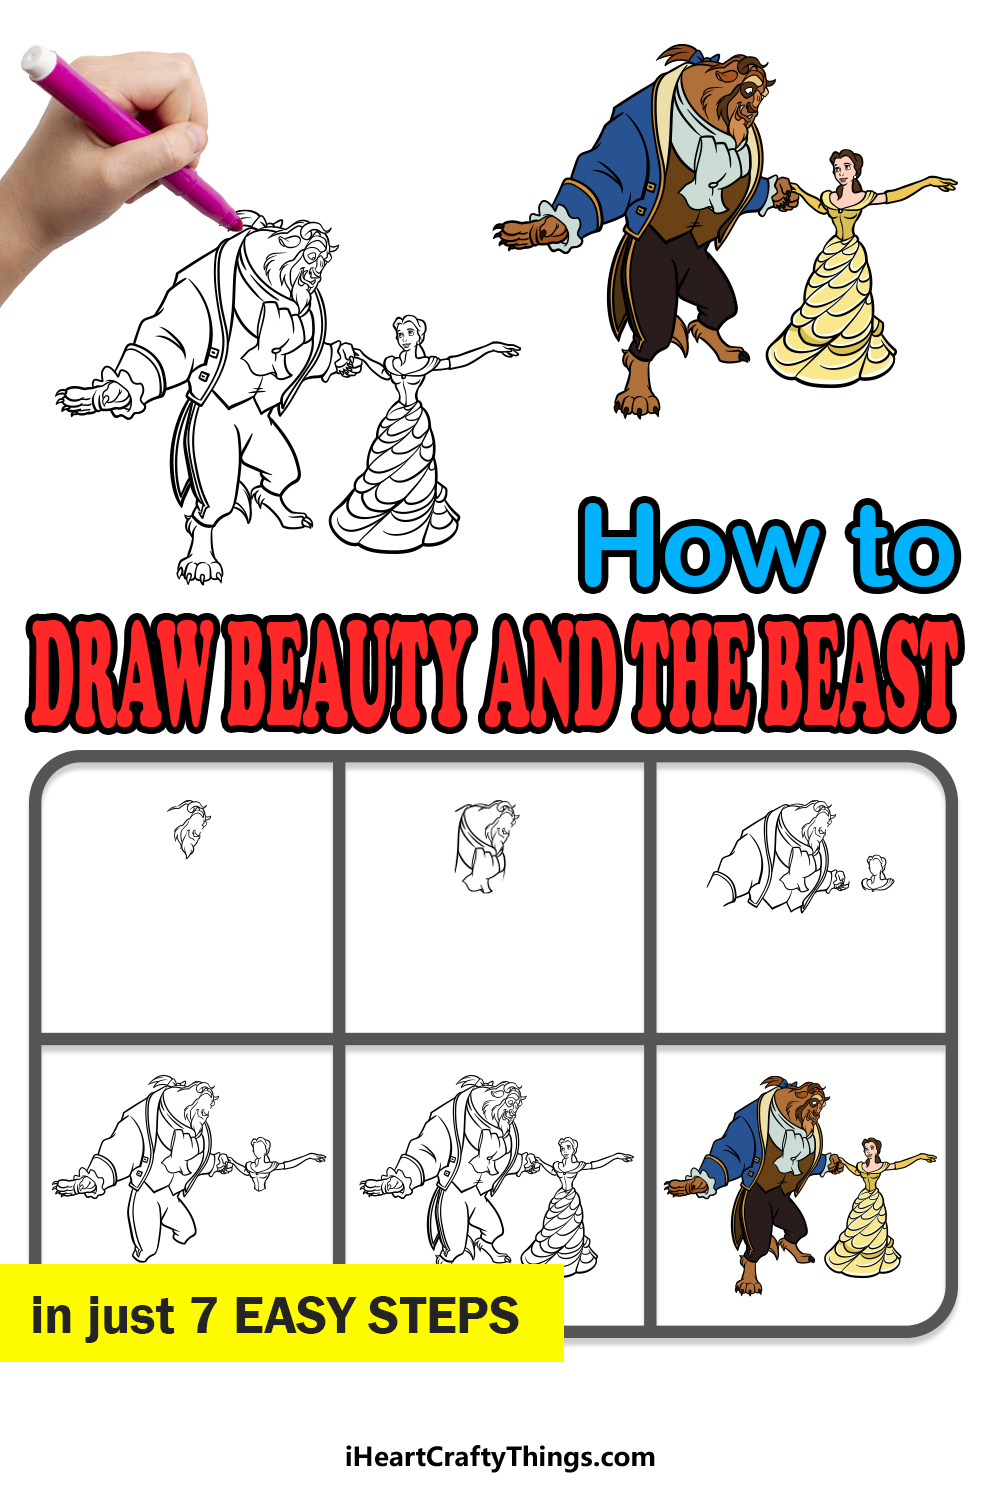 how to draw Beauty and the Beast in 7 easy steps